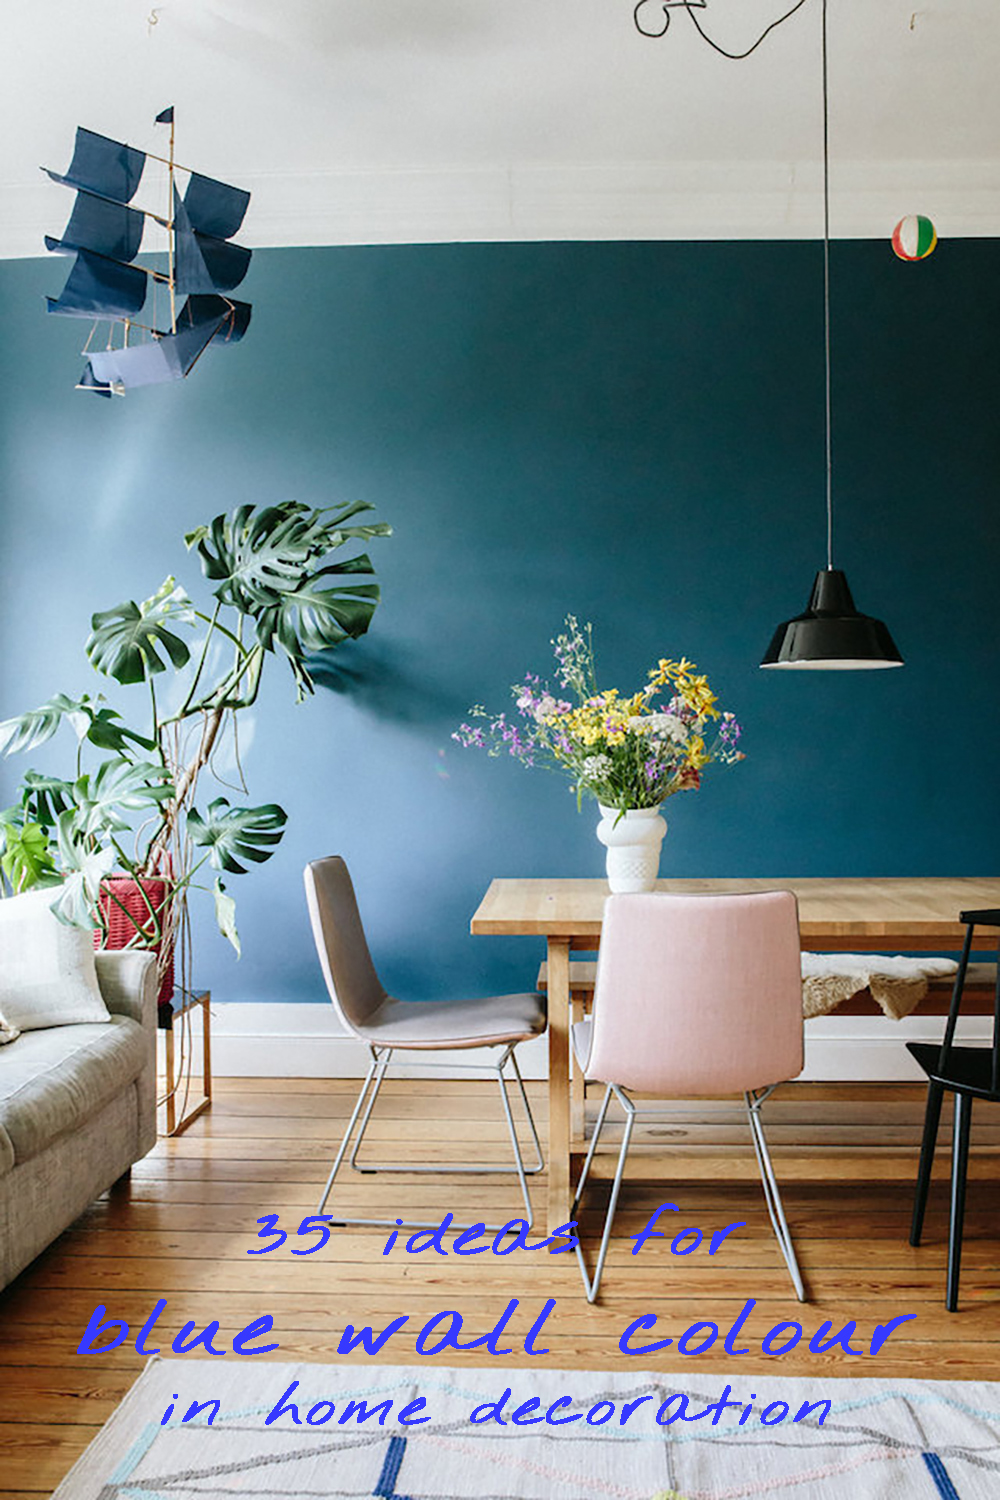 Photo Decoration In Room 35 Ideas For Blue Wall Colour In Home Decoration Aliz S Wonderland